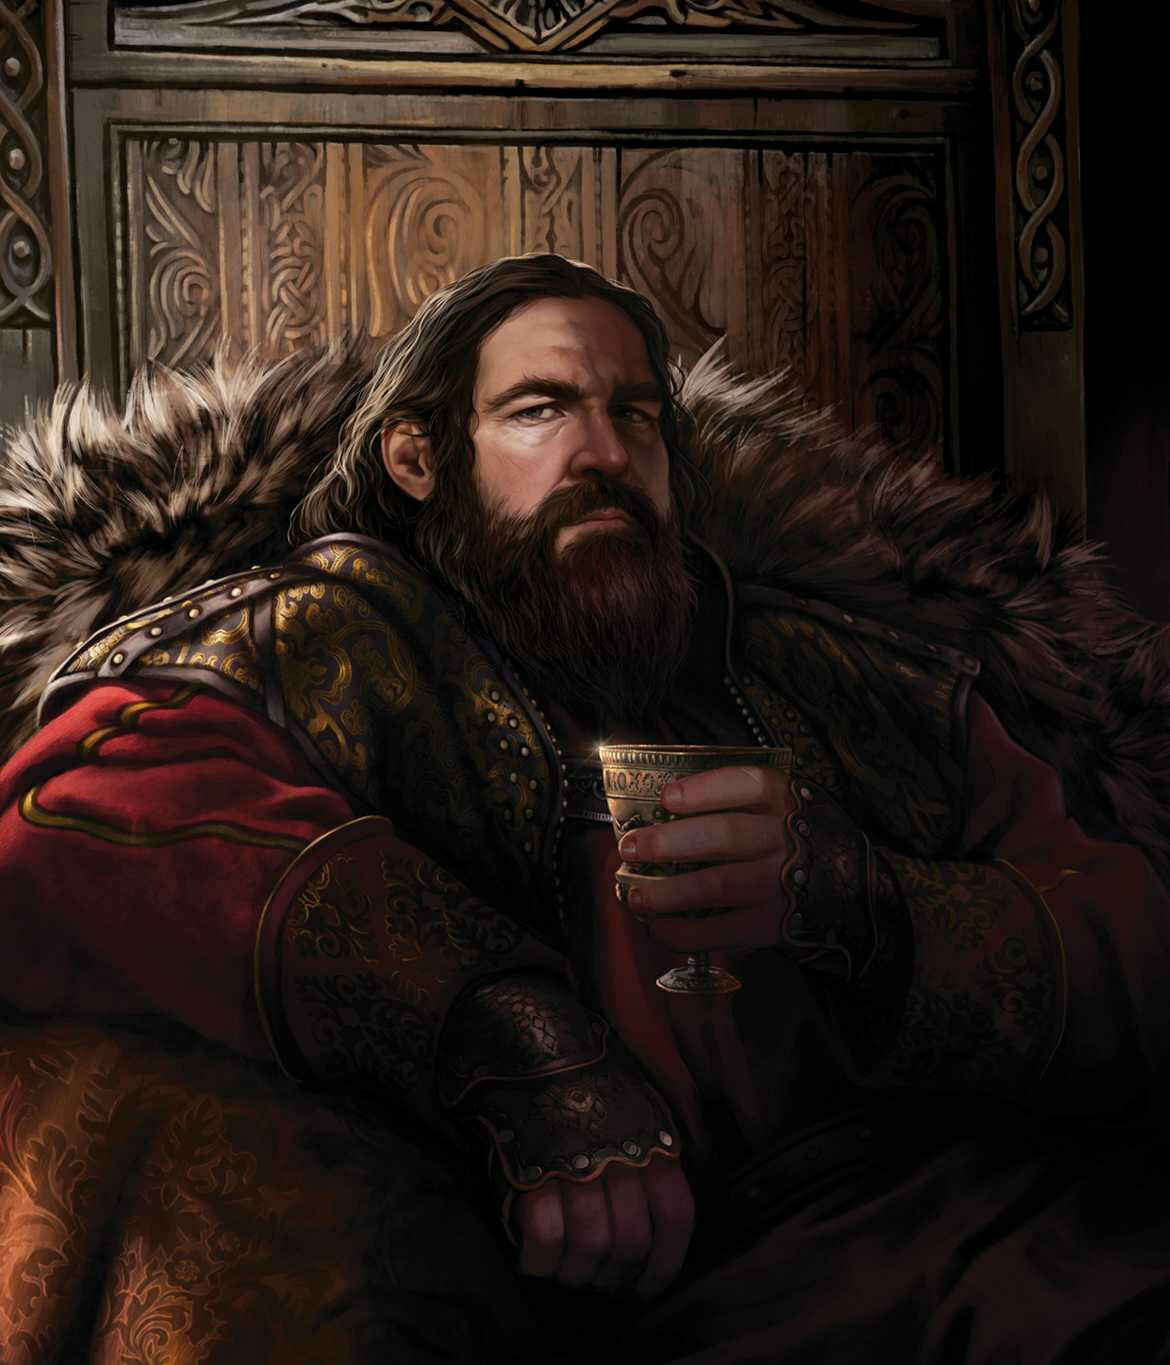 Robert I. Baratheon